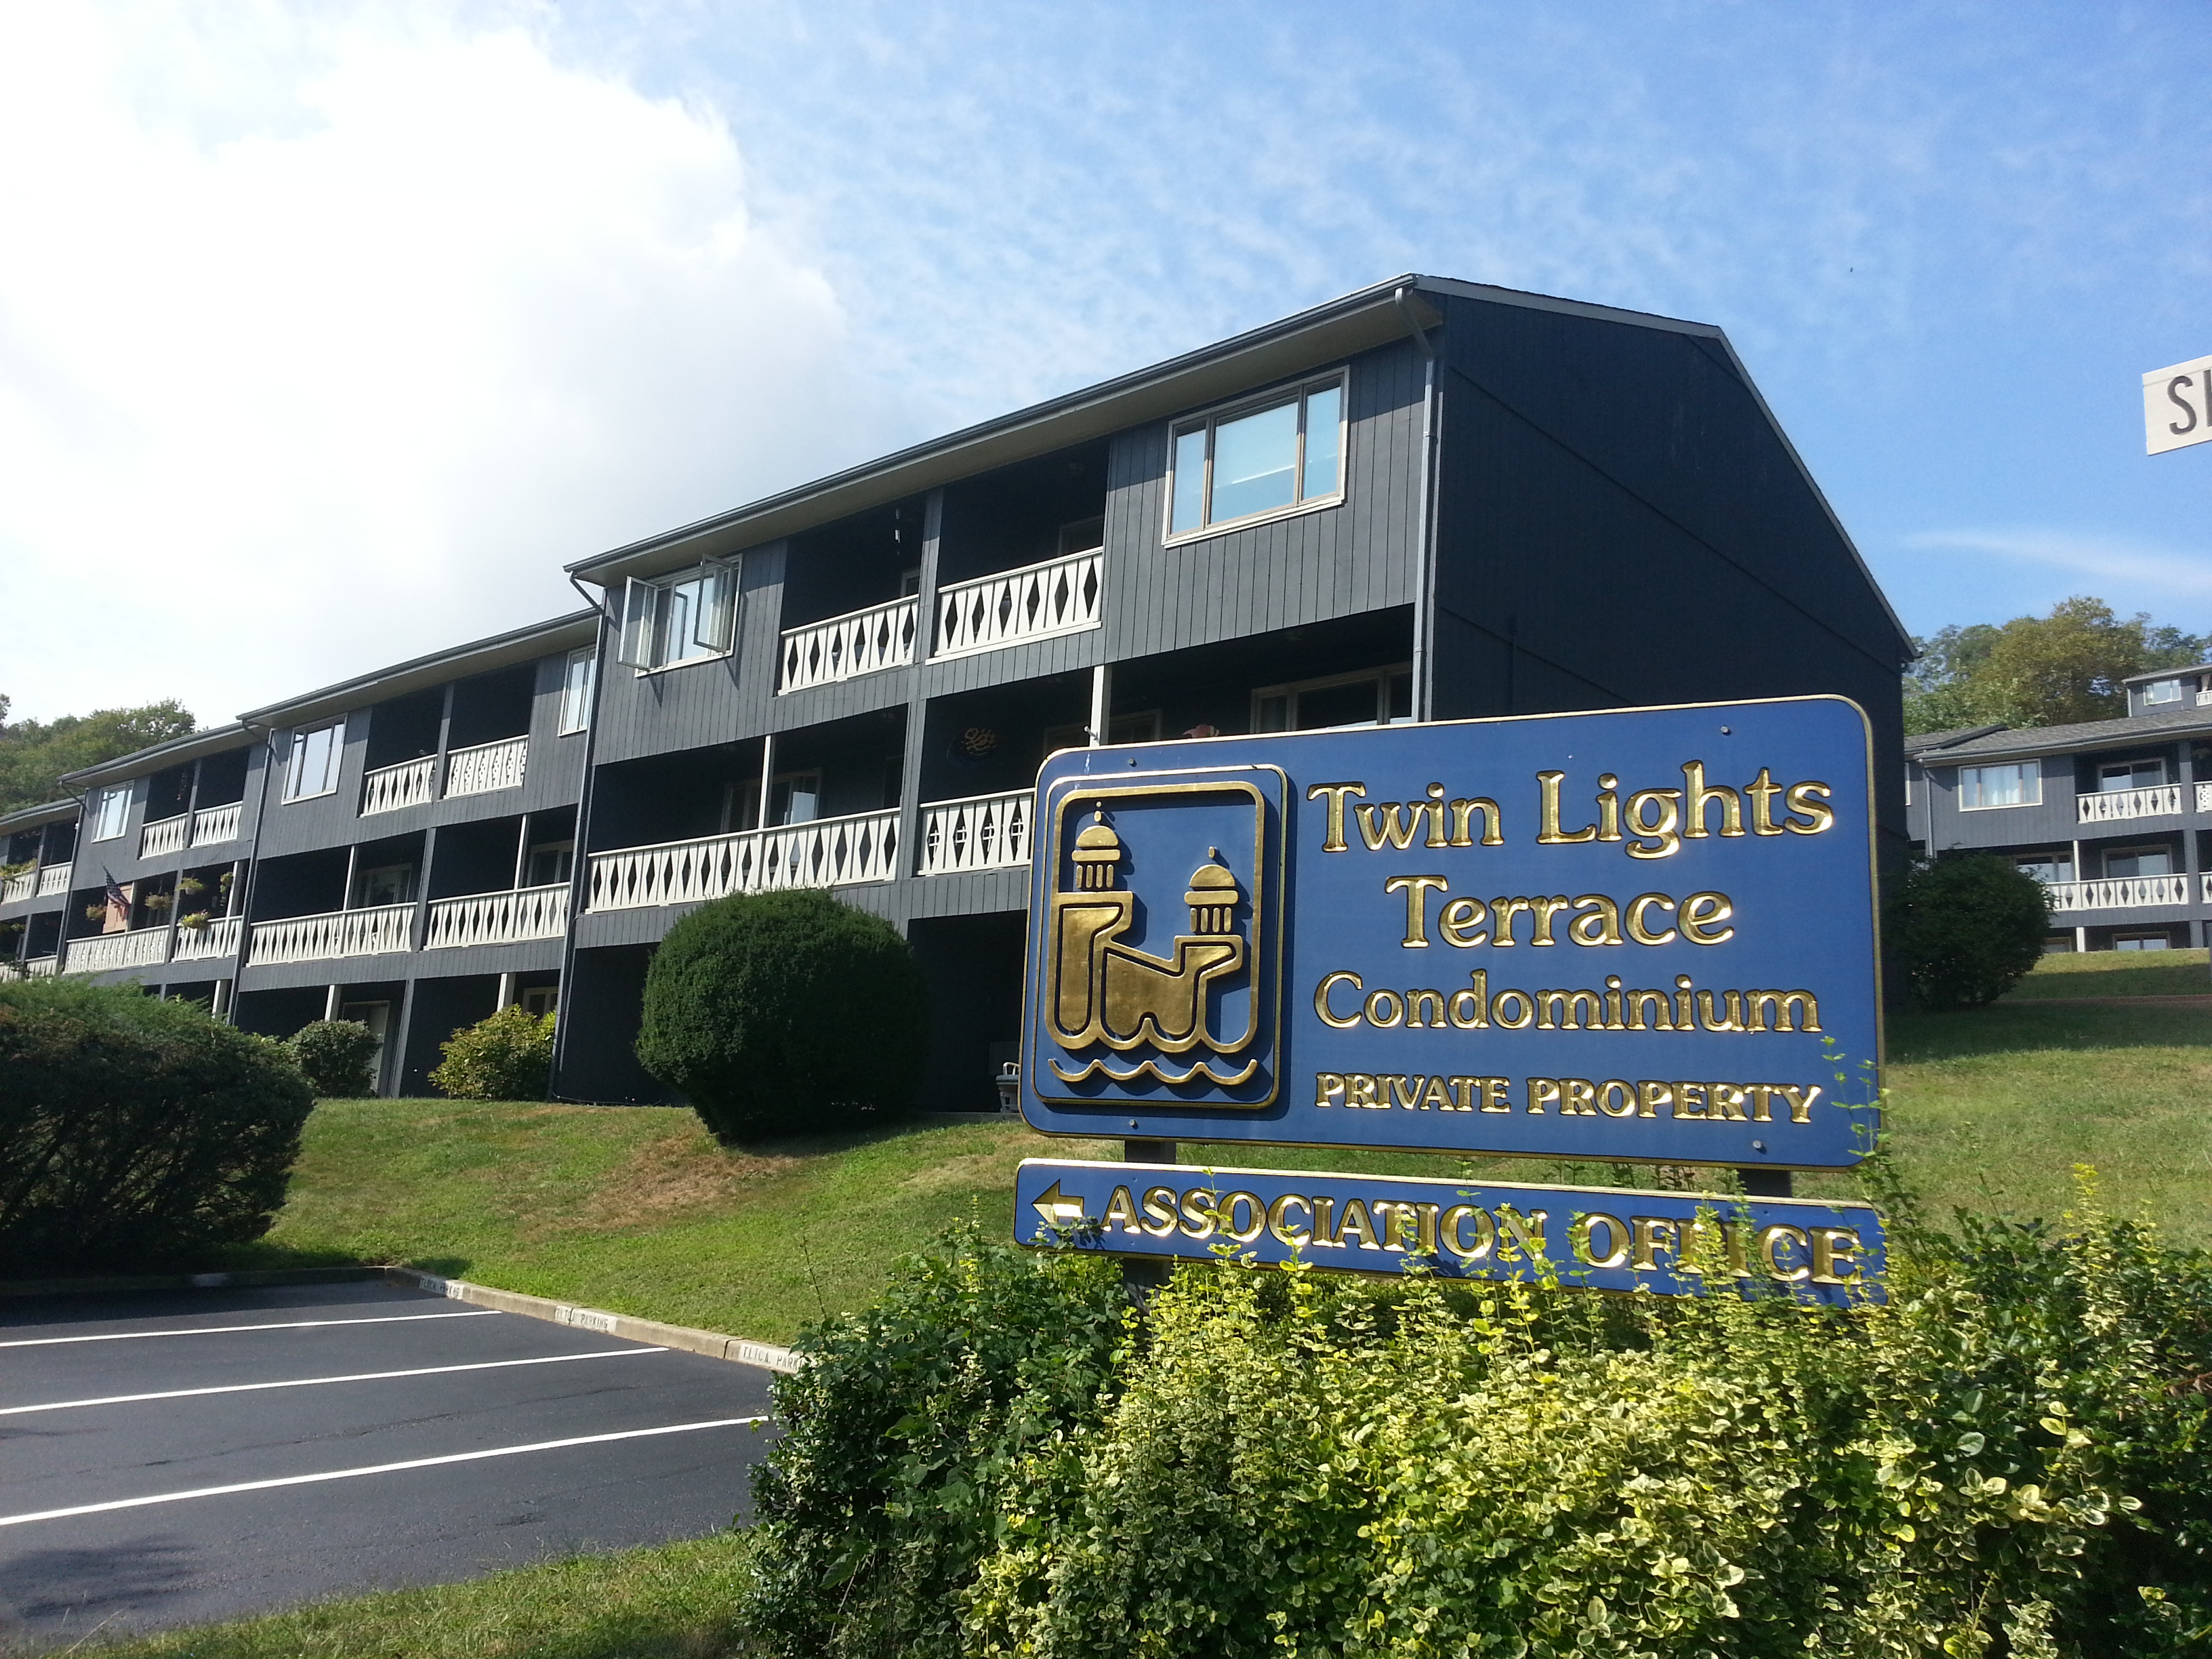 Twin Lights Terrace is a community of one and two bedroom condos overlooking the ocean and river.